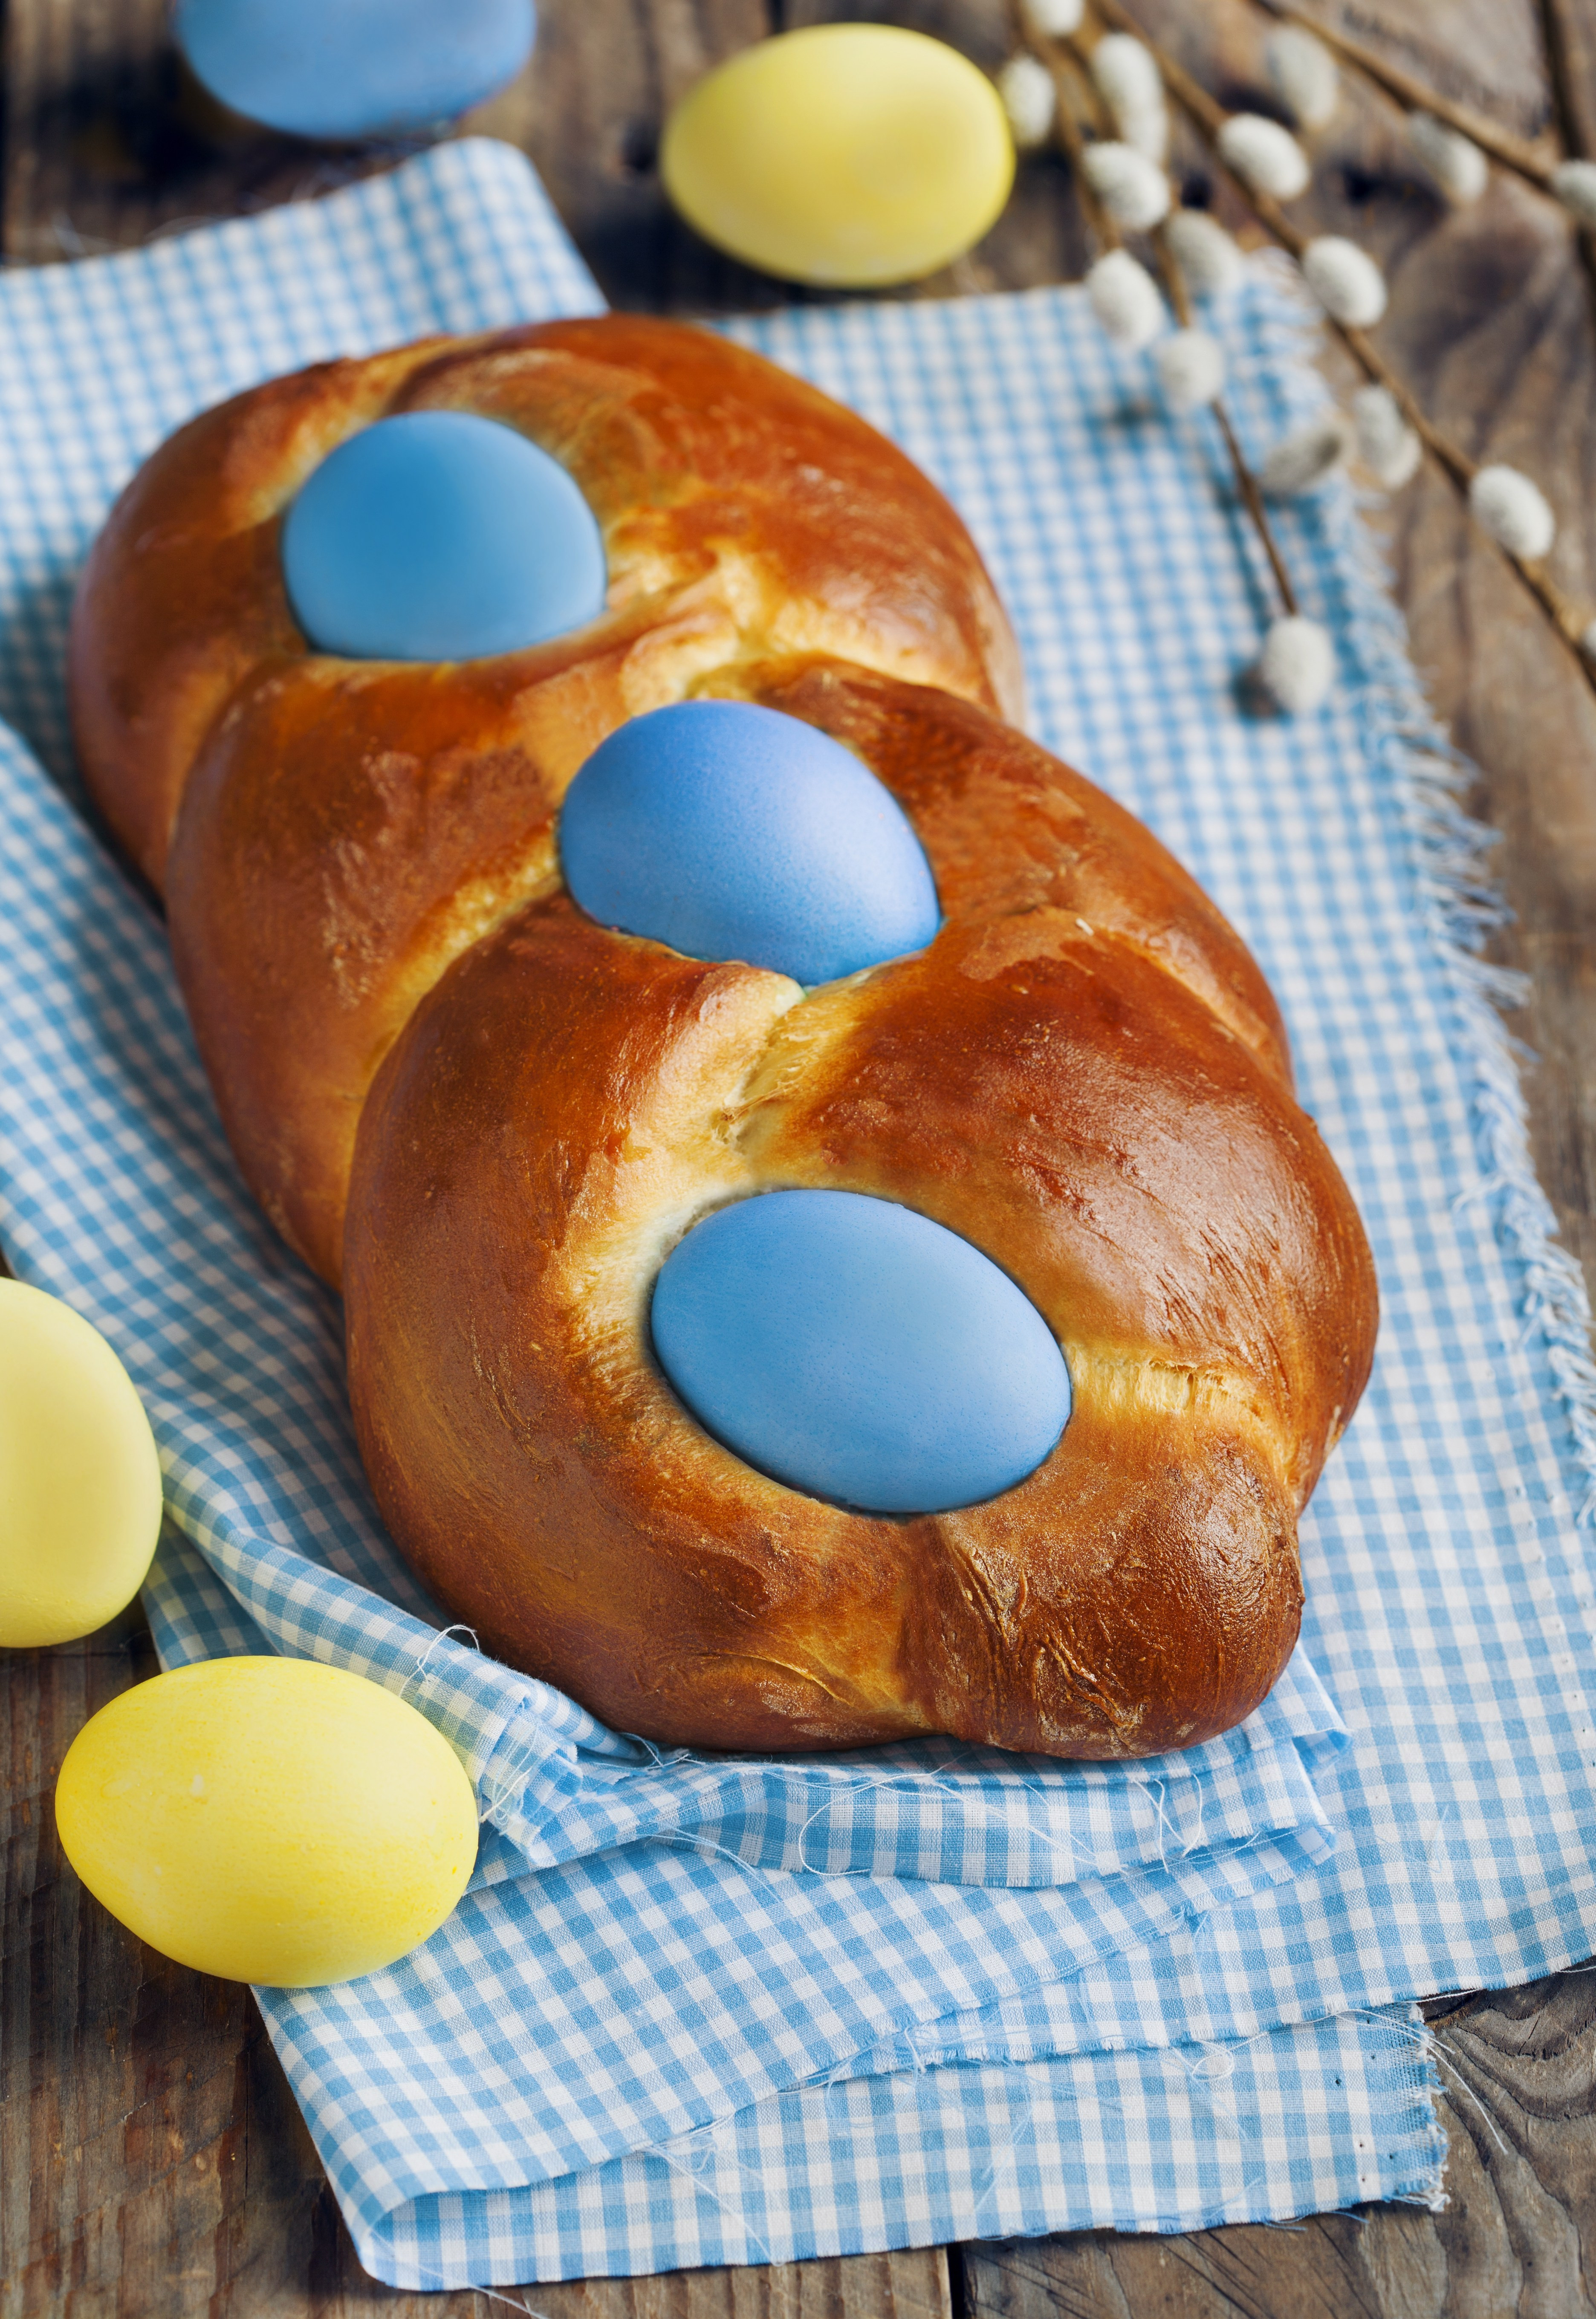 Easter Egg Bread  Italian Easter Egg Bread Creative Cynchronicity